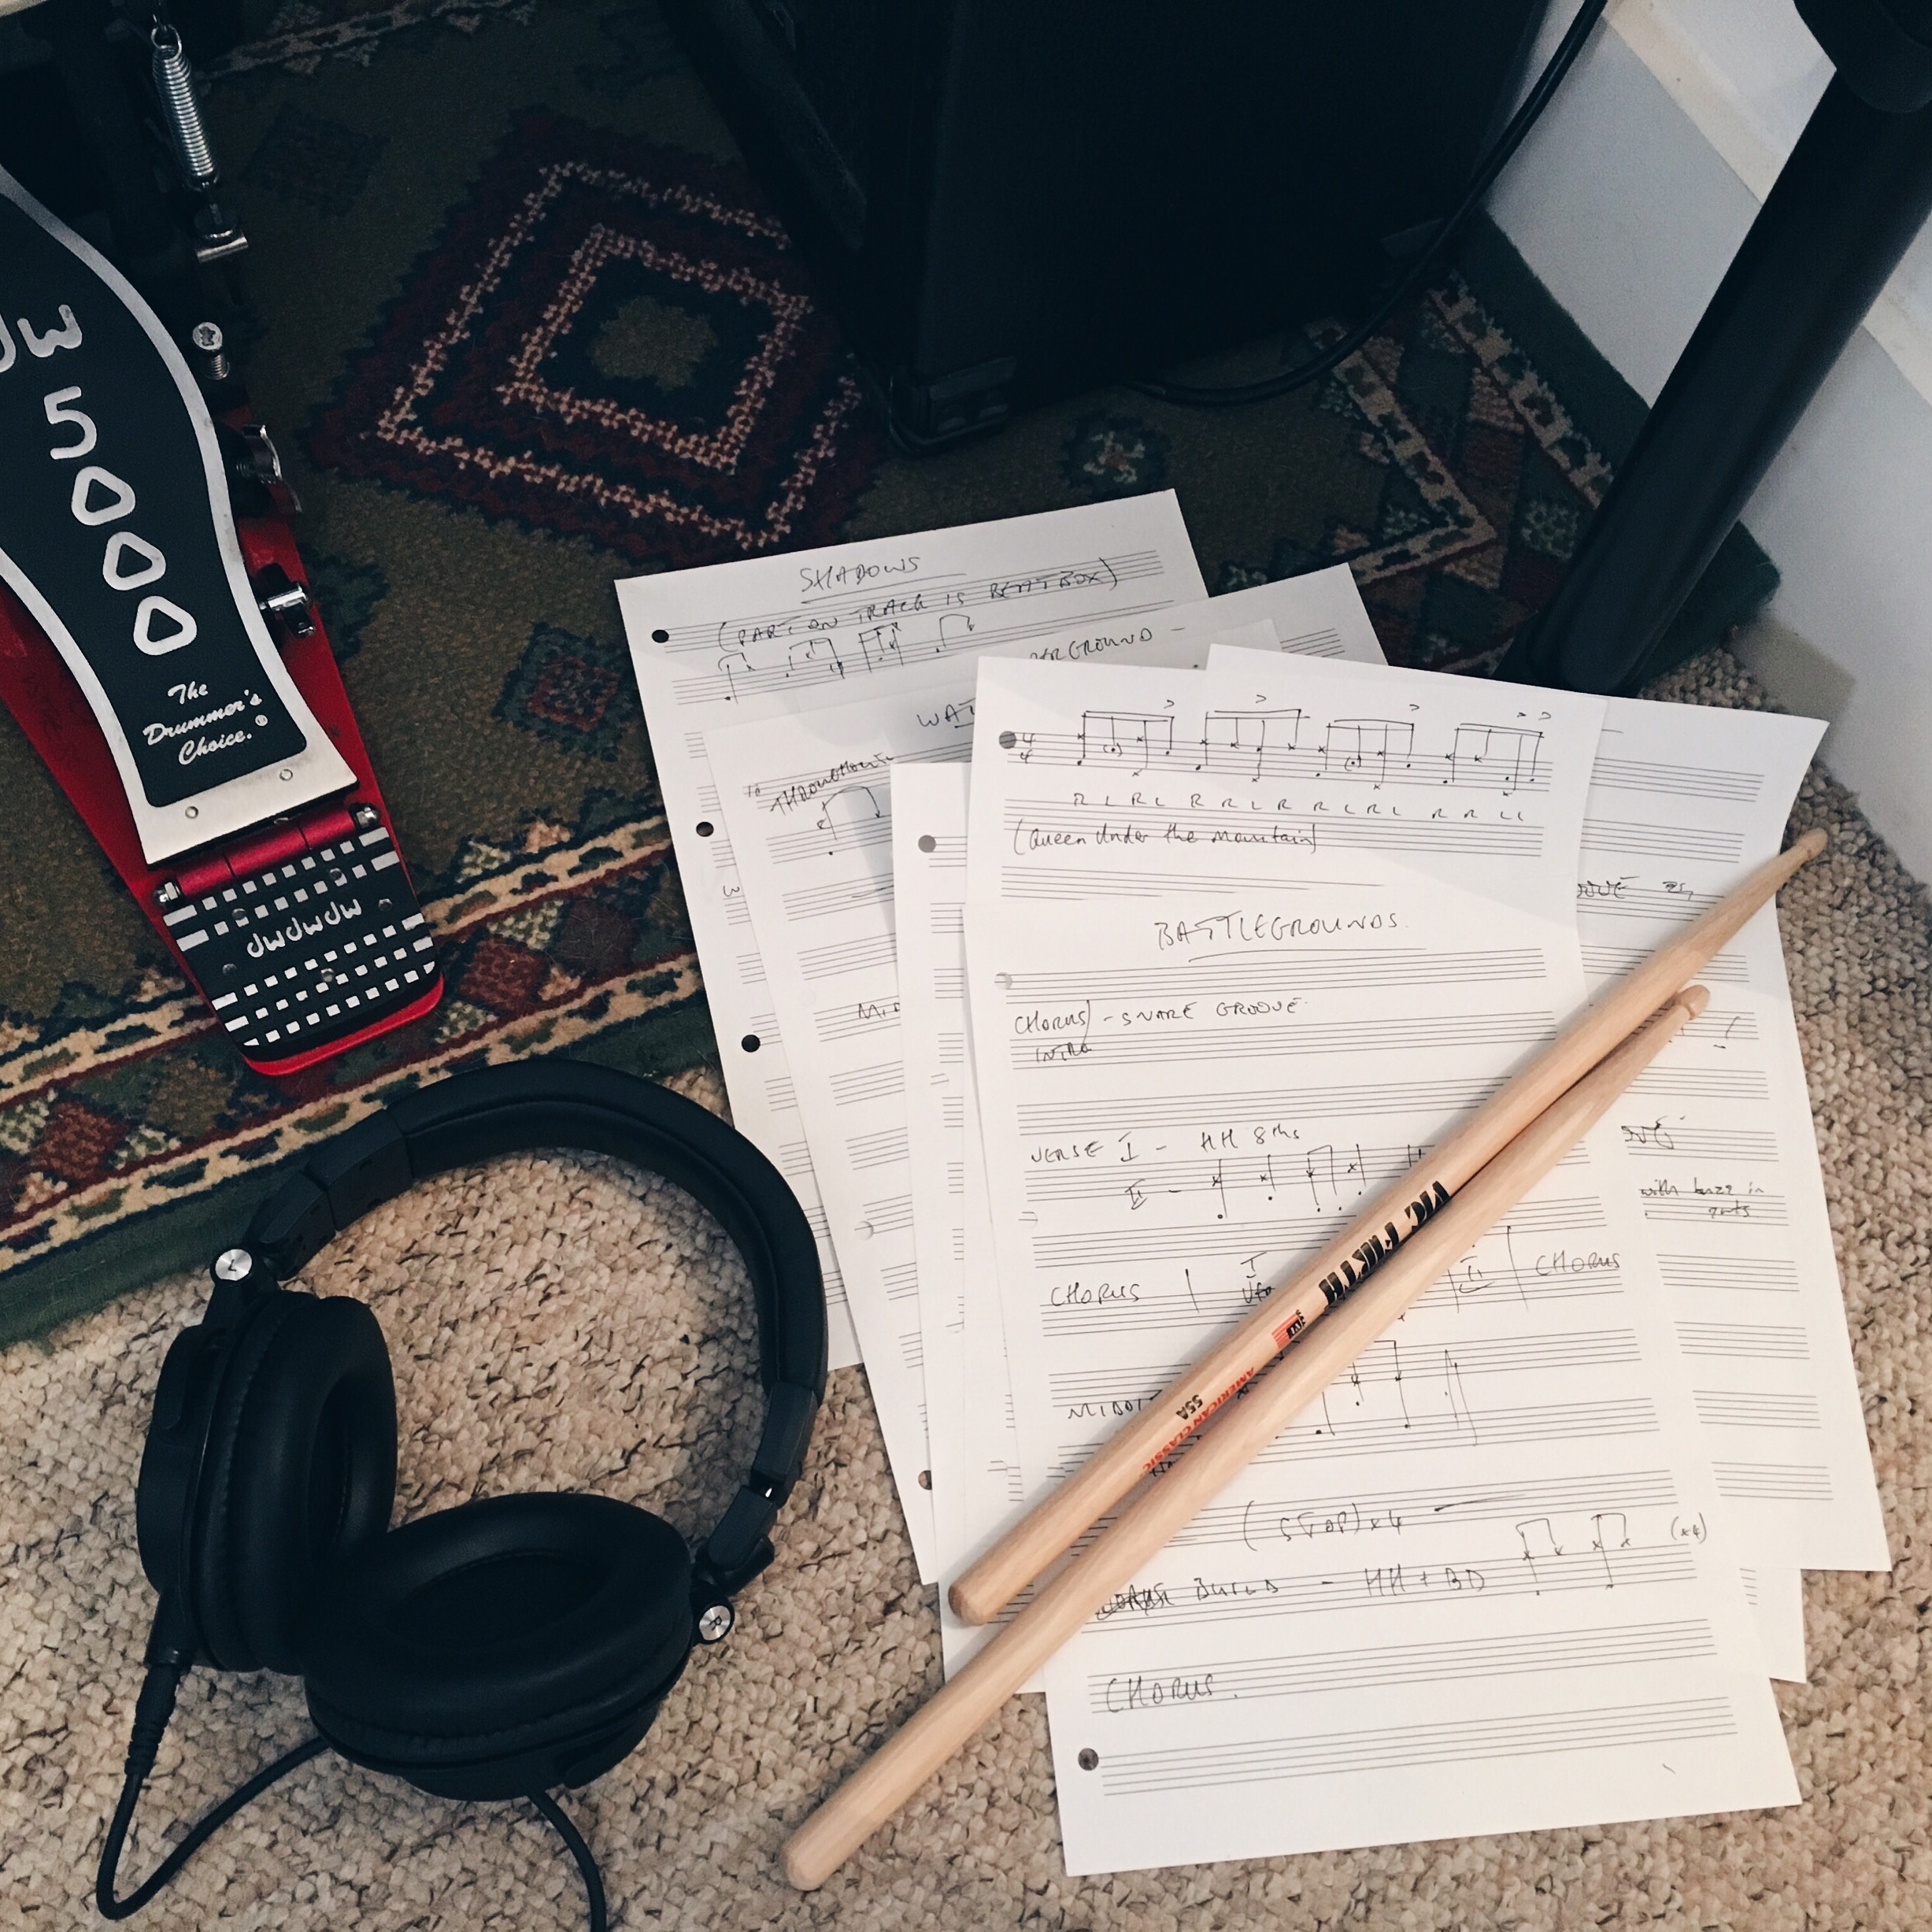 Scribbled notes for a set I'm learning for some gigs over the next few months —Emphasis on the scribbled.